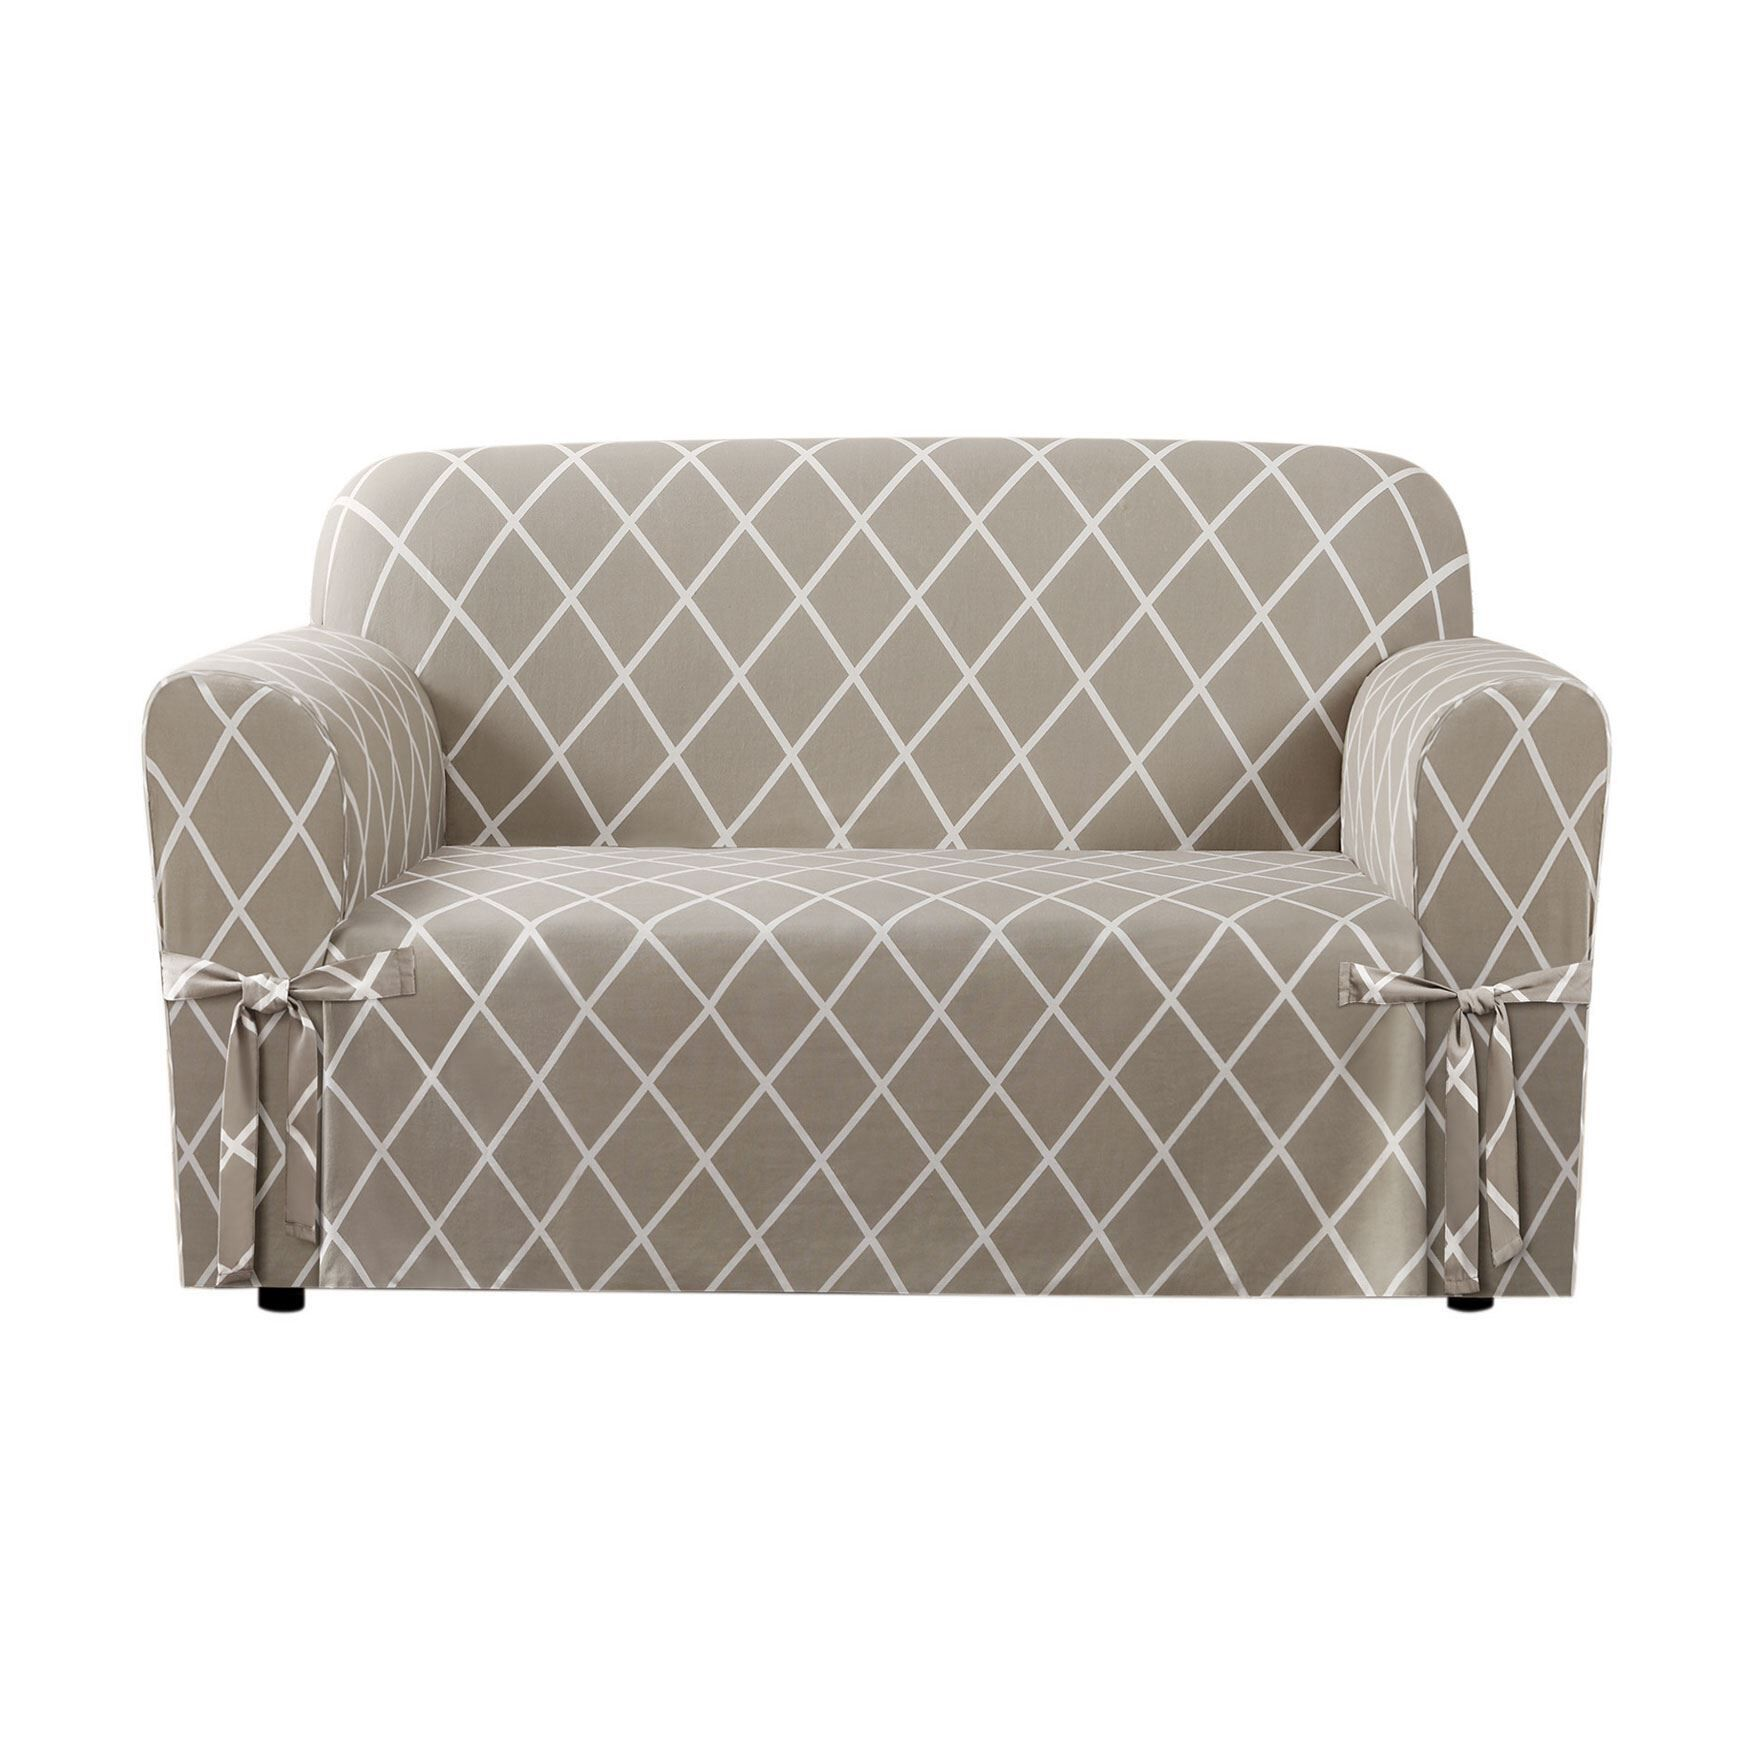 Lattice Slipcover Collection